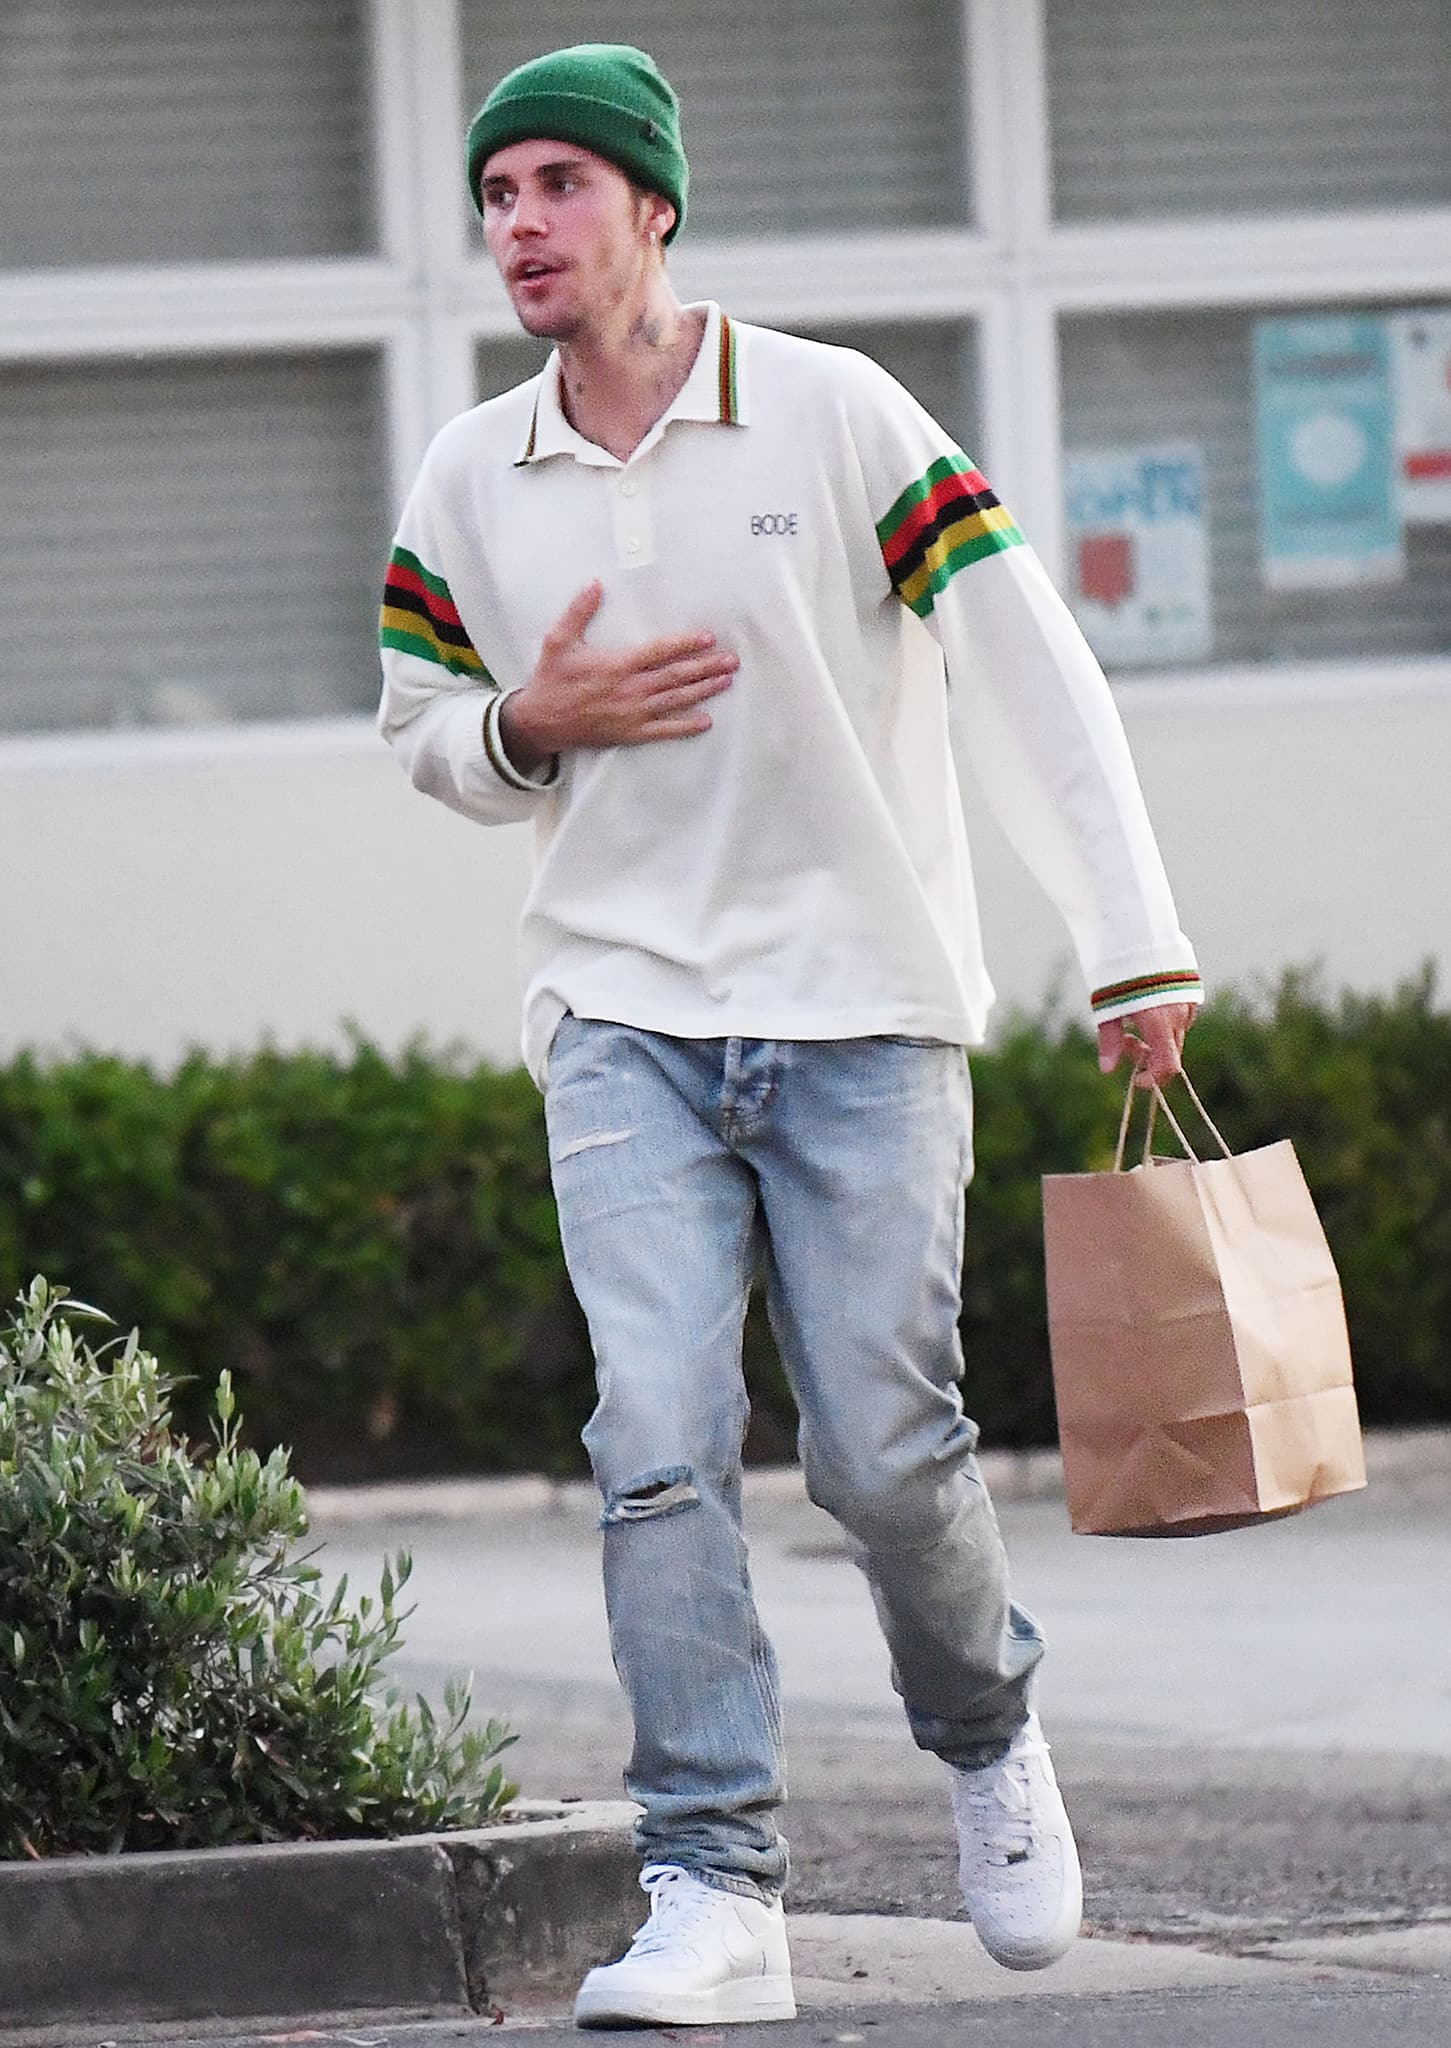 Justin Bieber shows off his cool street style with a long-sleeved polo shirt, light-washed jeans, green beanie, and Nike shoes